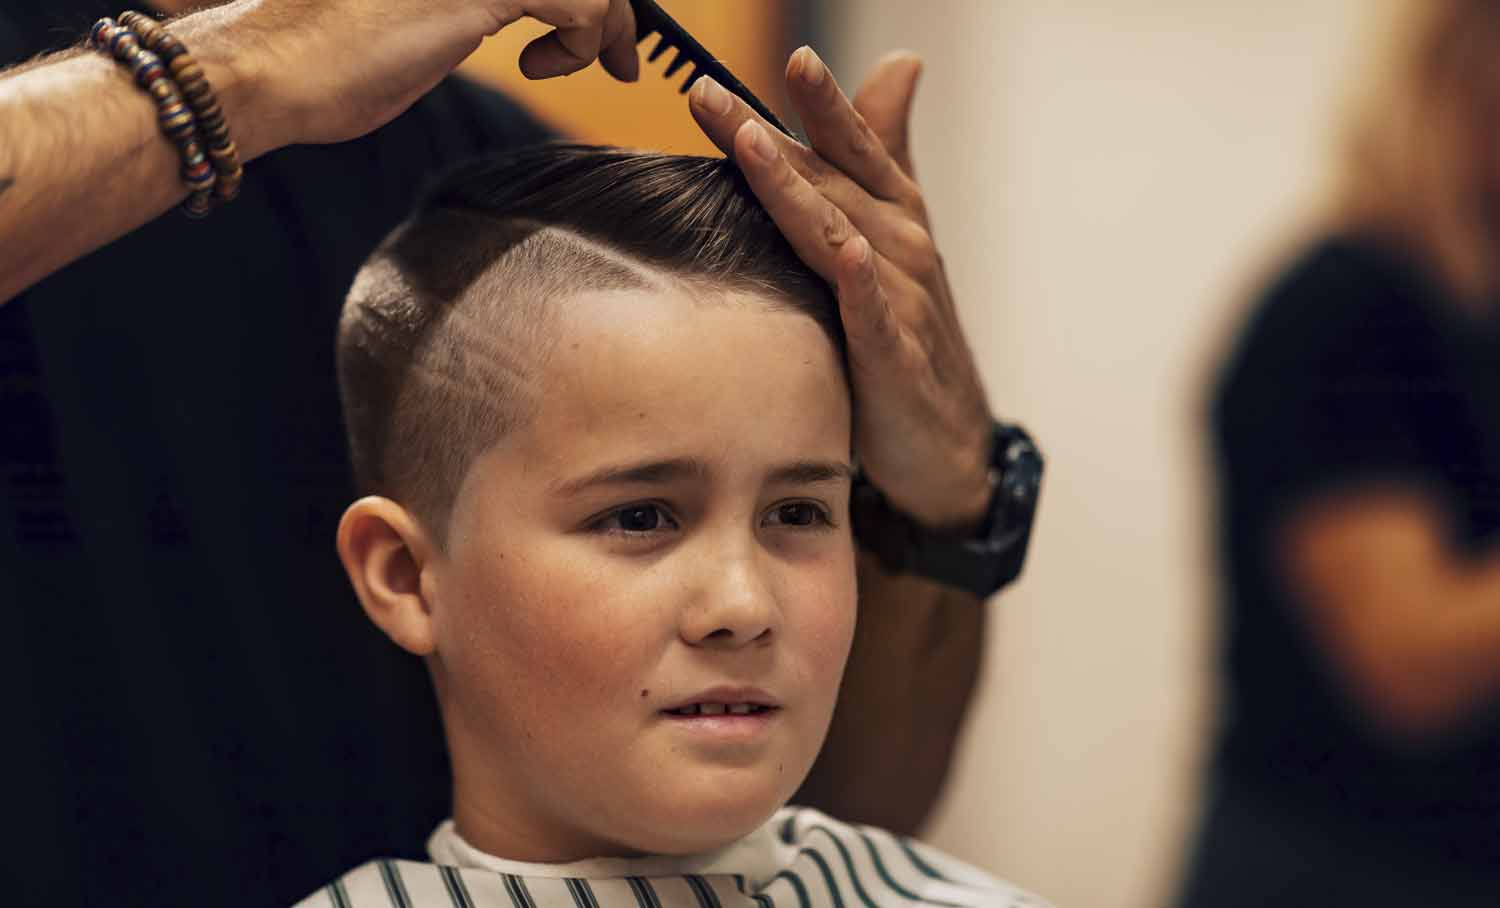 Barber Styling Young Boys Hair, The final touches.